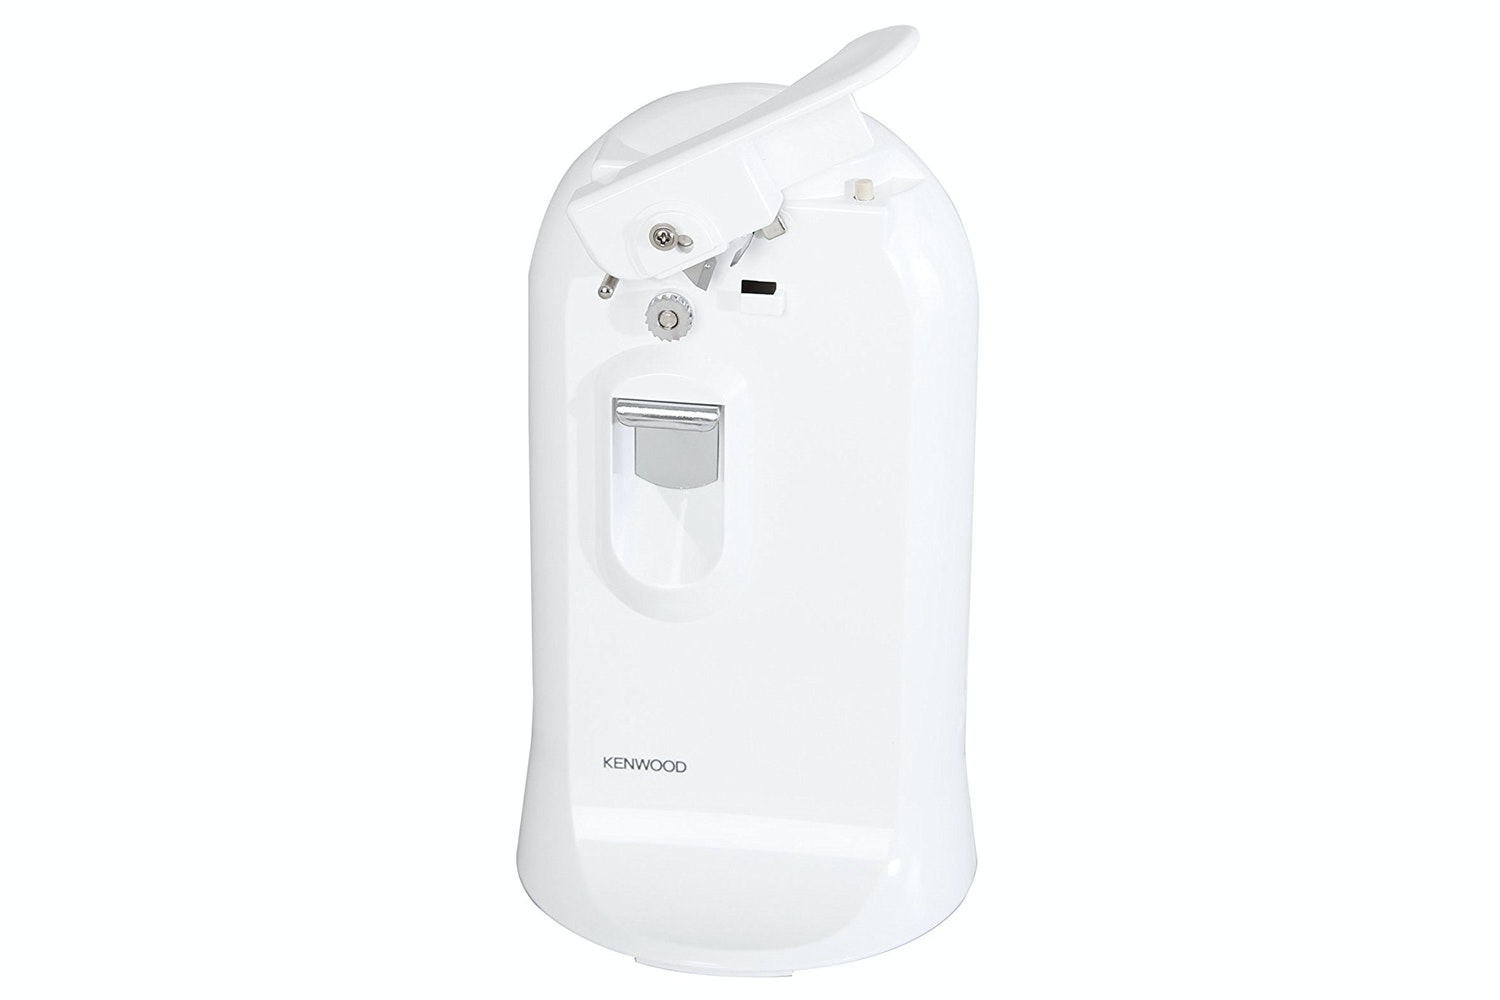 Kenwood 3 in 1 Can Opener   CO600